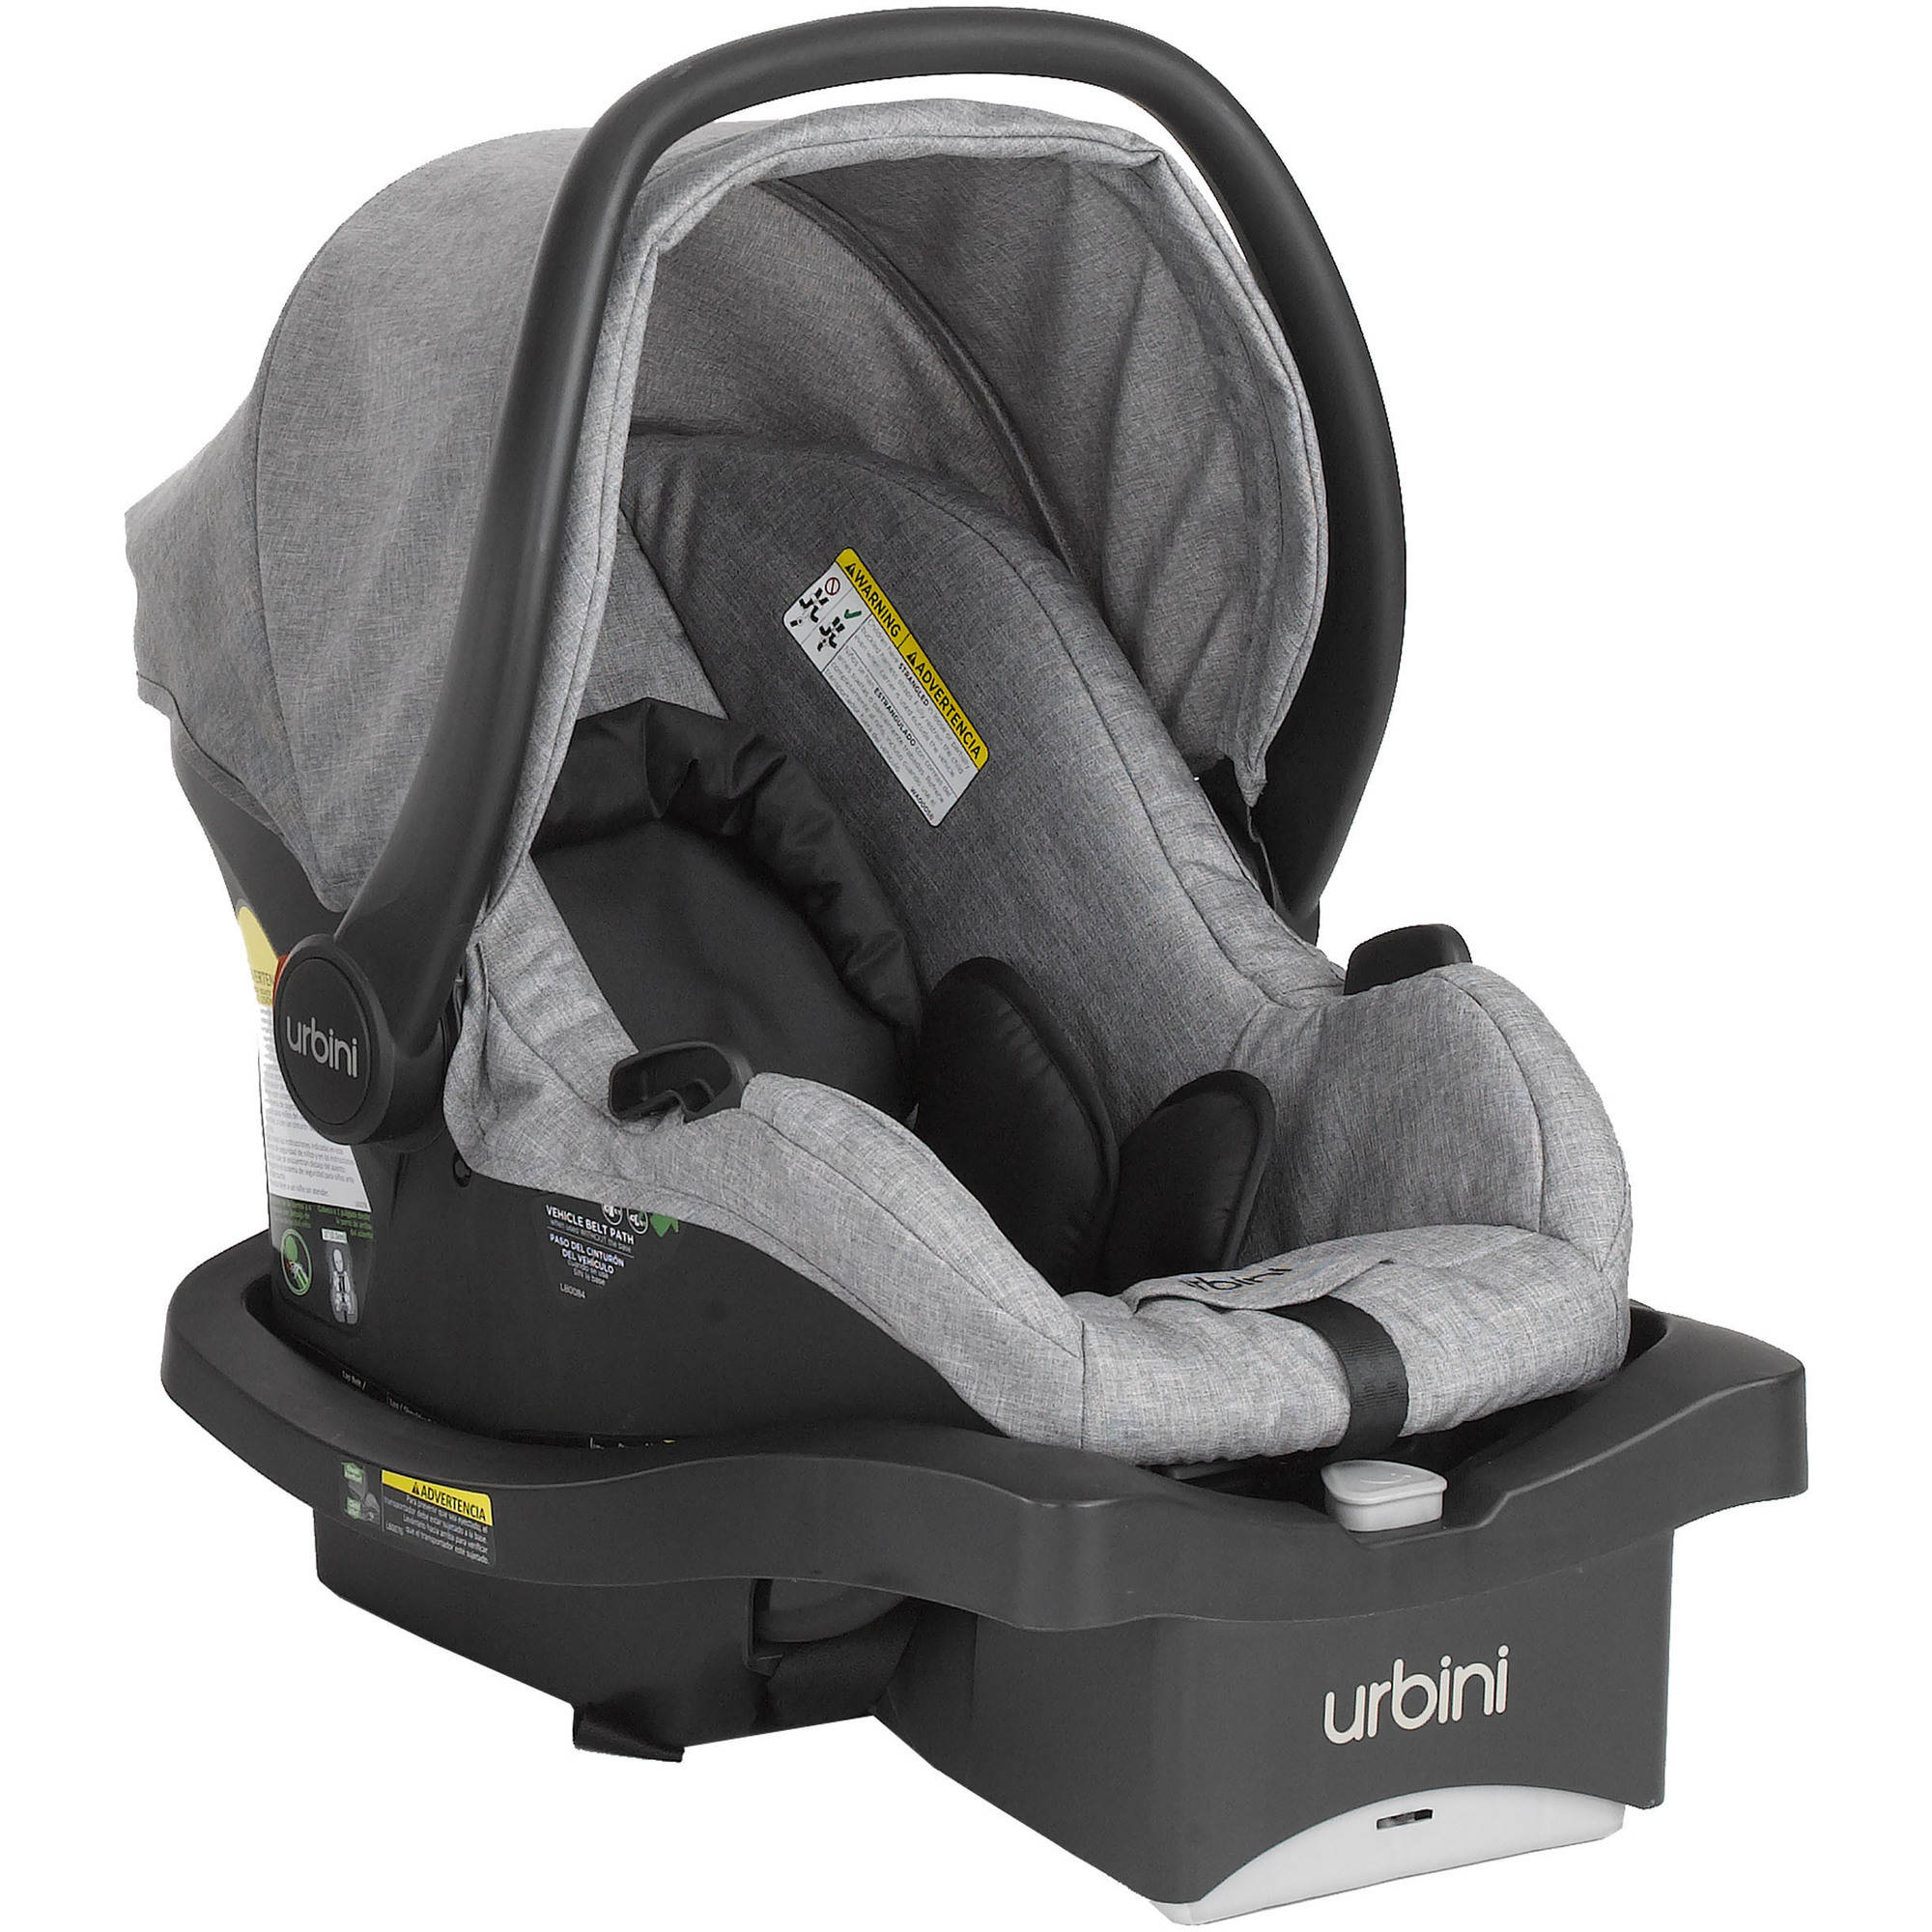 Urbini Sonti Infant Car Seat (Special Edition), Heather Grey